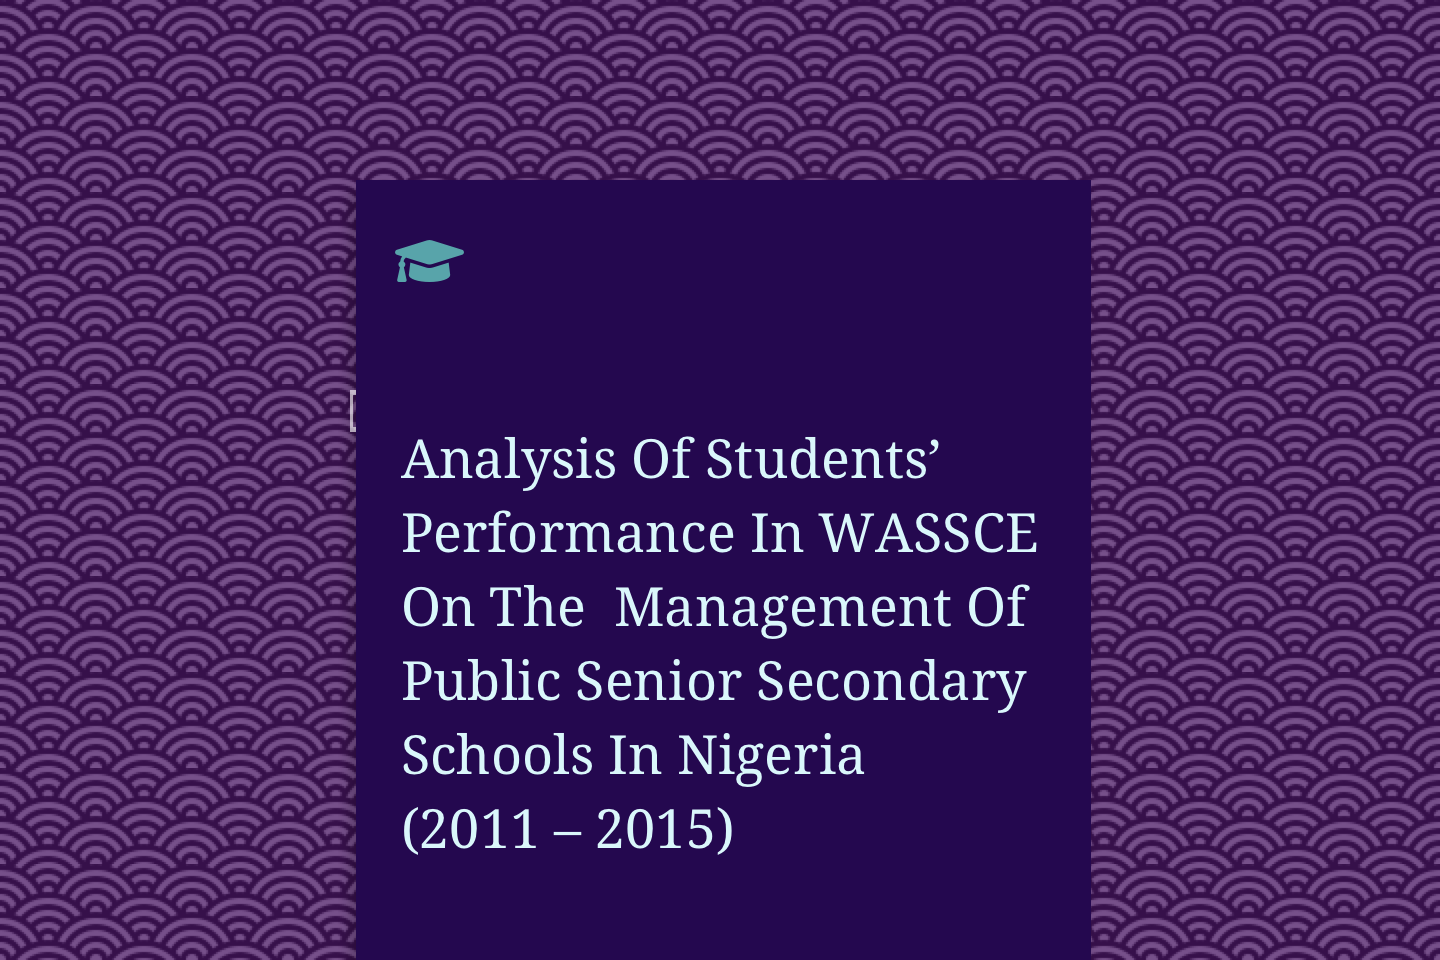 Analysis Of Students' Performance In WASSCE On The Management Of Public Senior Secondary Schools In Nigeria (2011 – 2015)